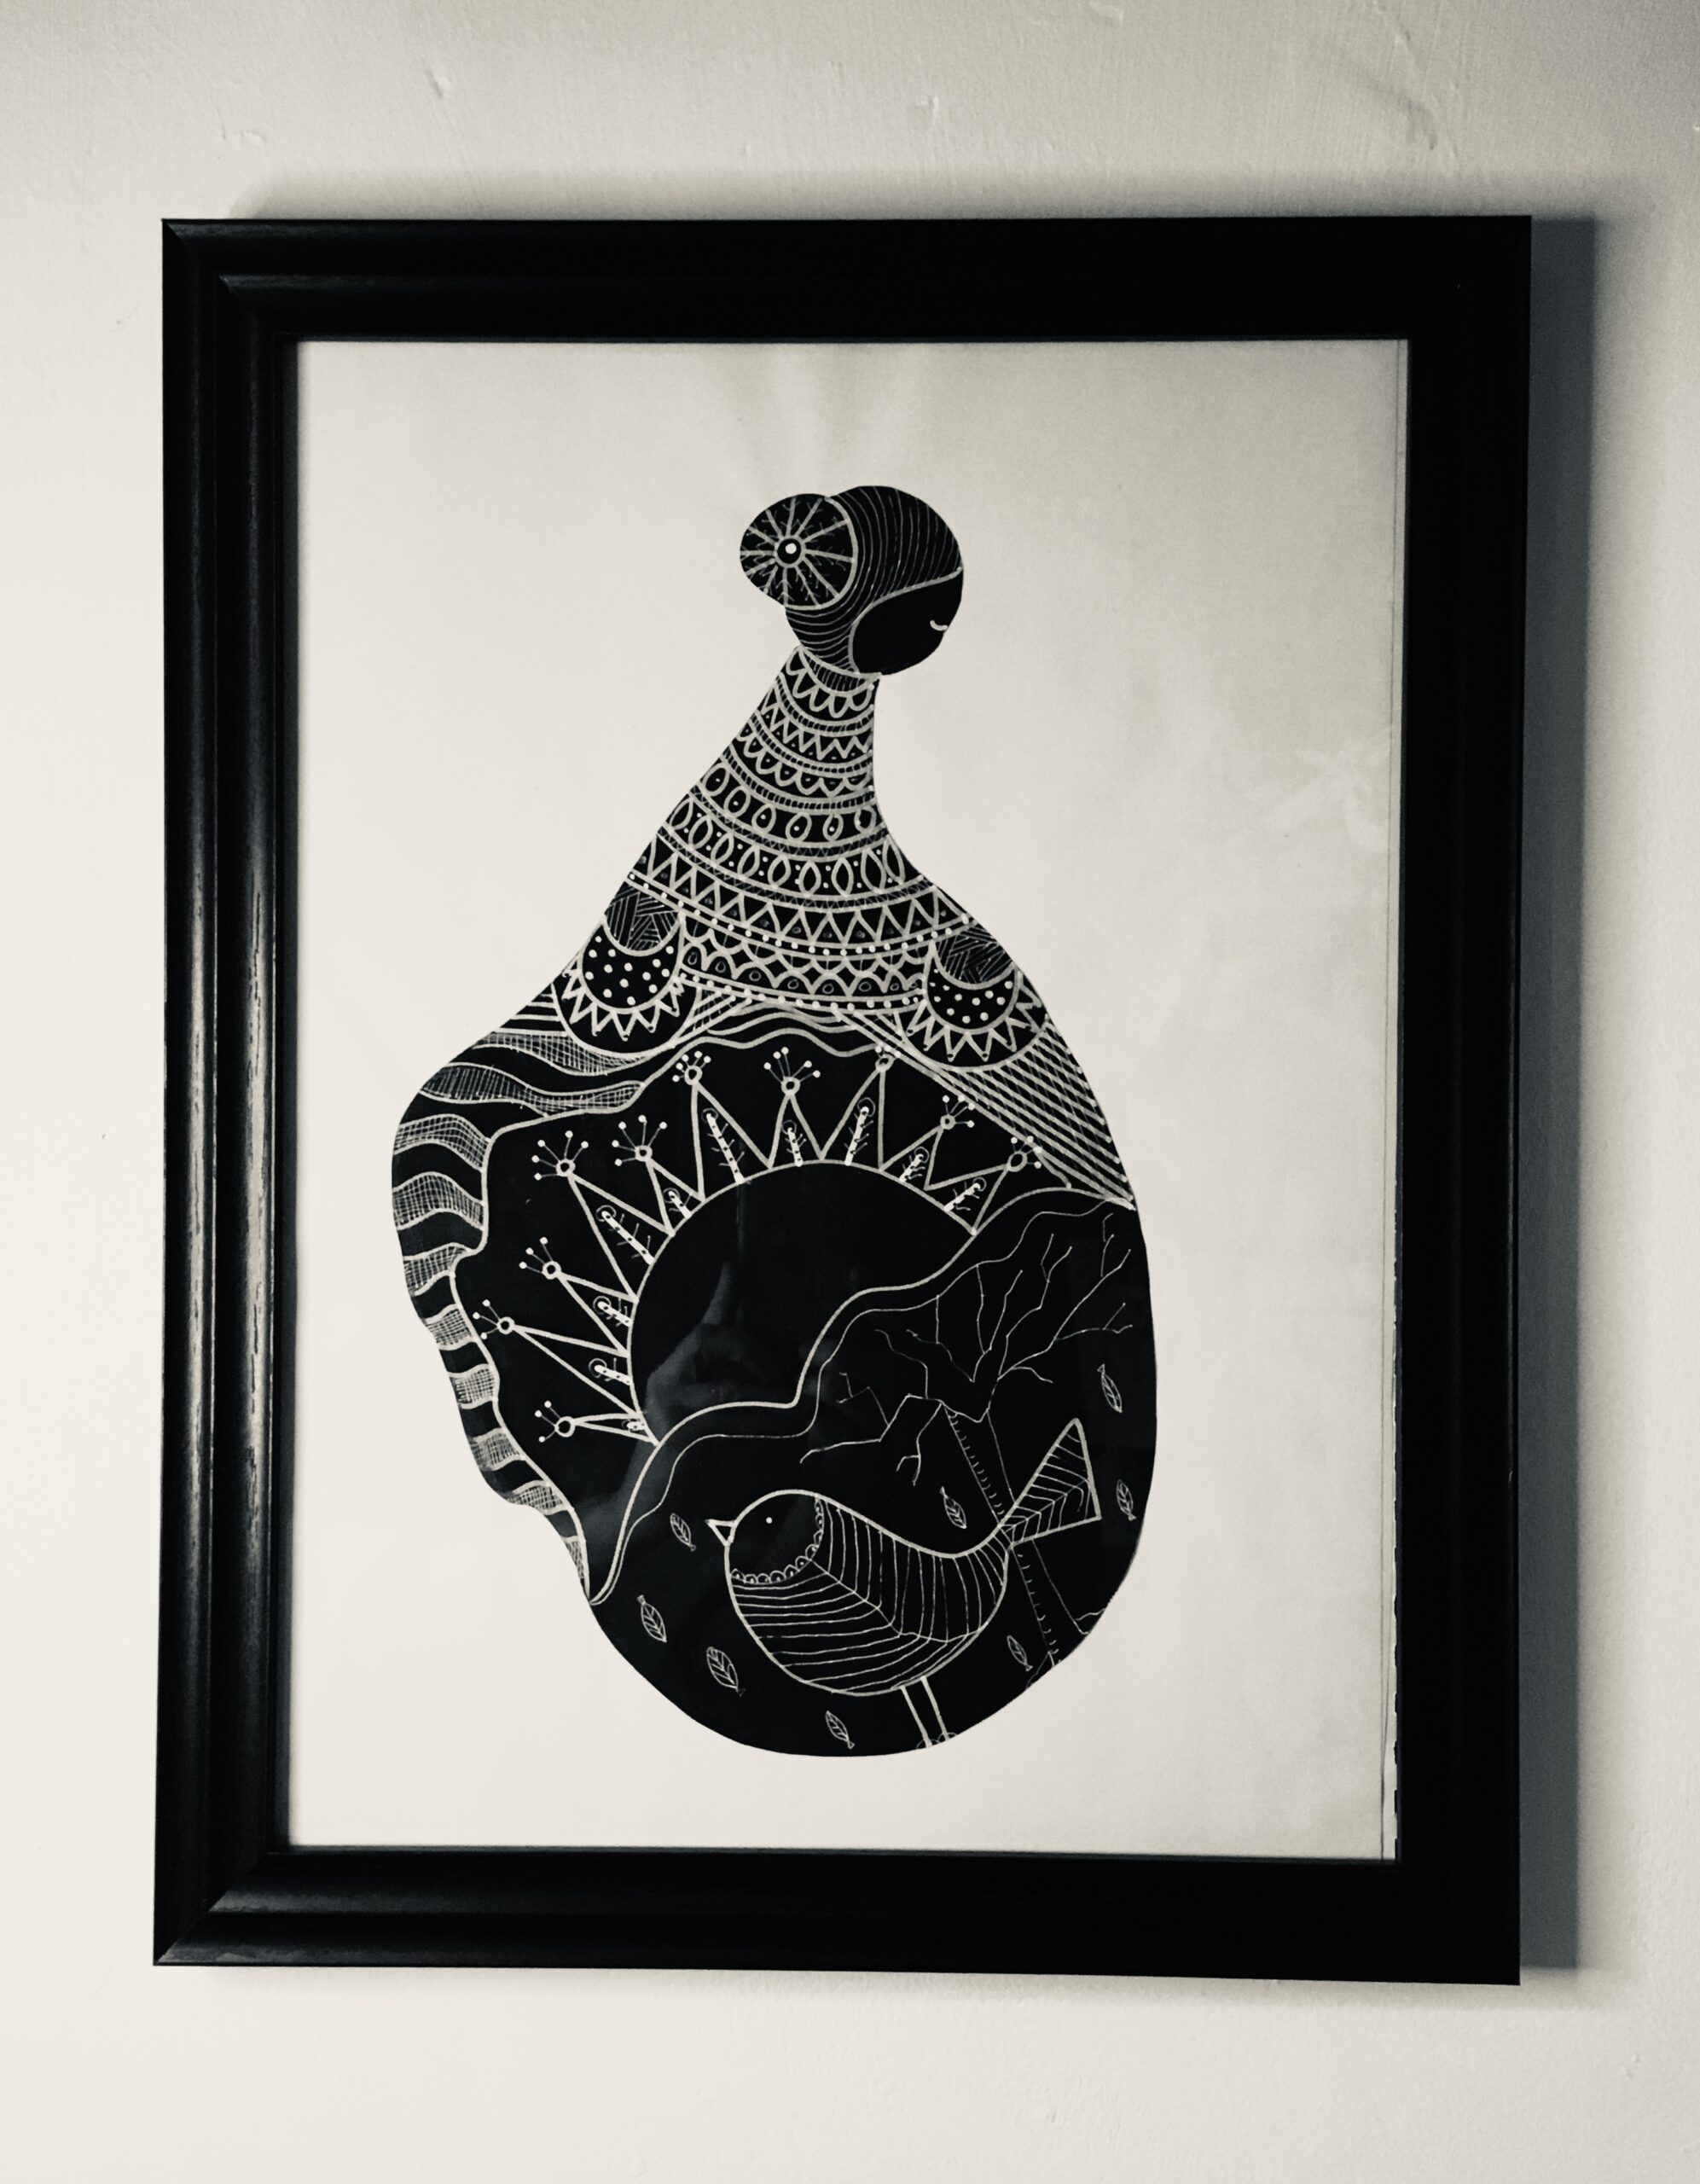 Kira-O-Brien-A-New-Day-Framed-Acrylic-and-Pen-Drawing-H46cm-x-39cm - Nua Collective